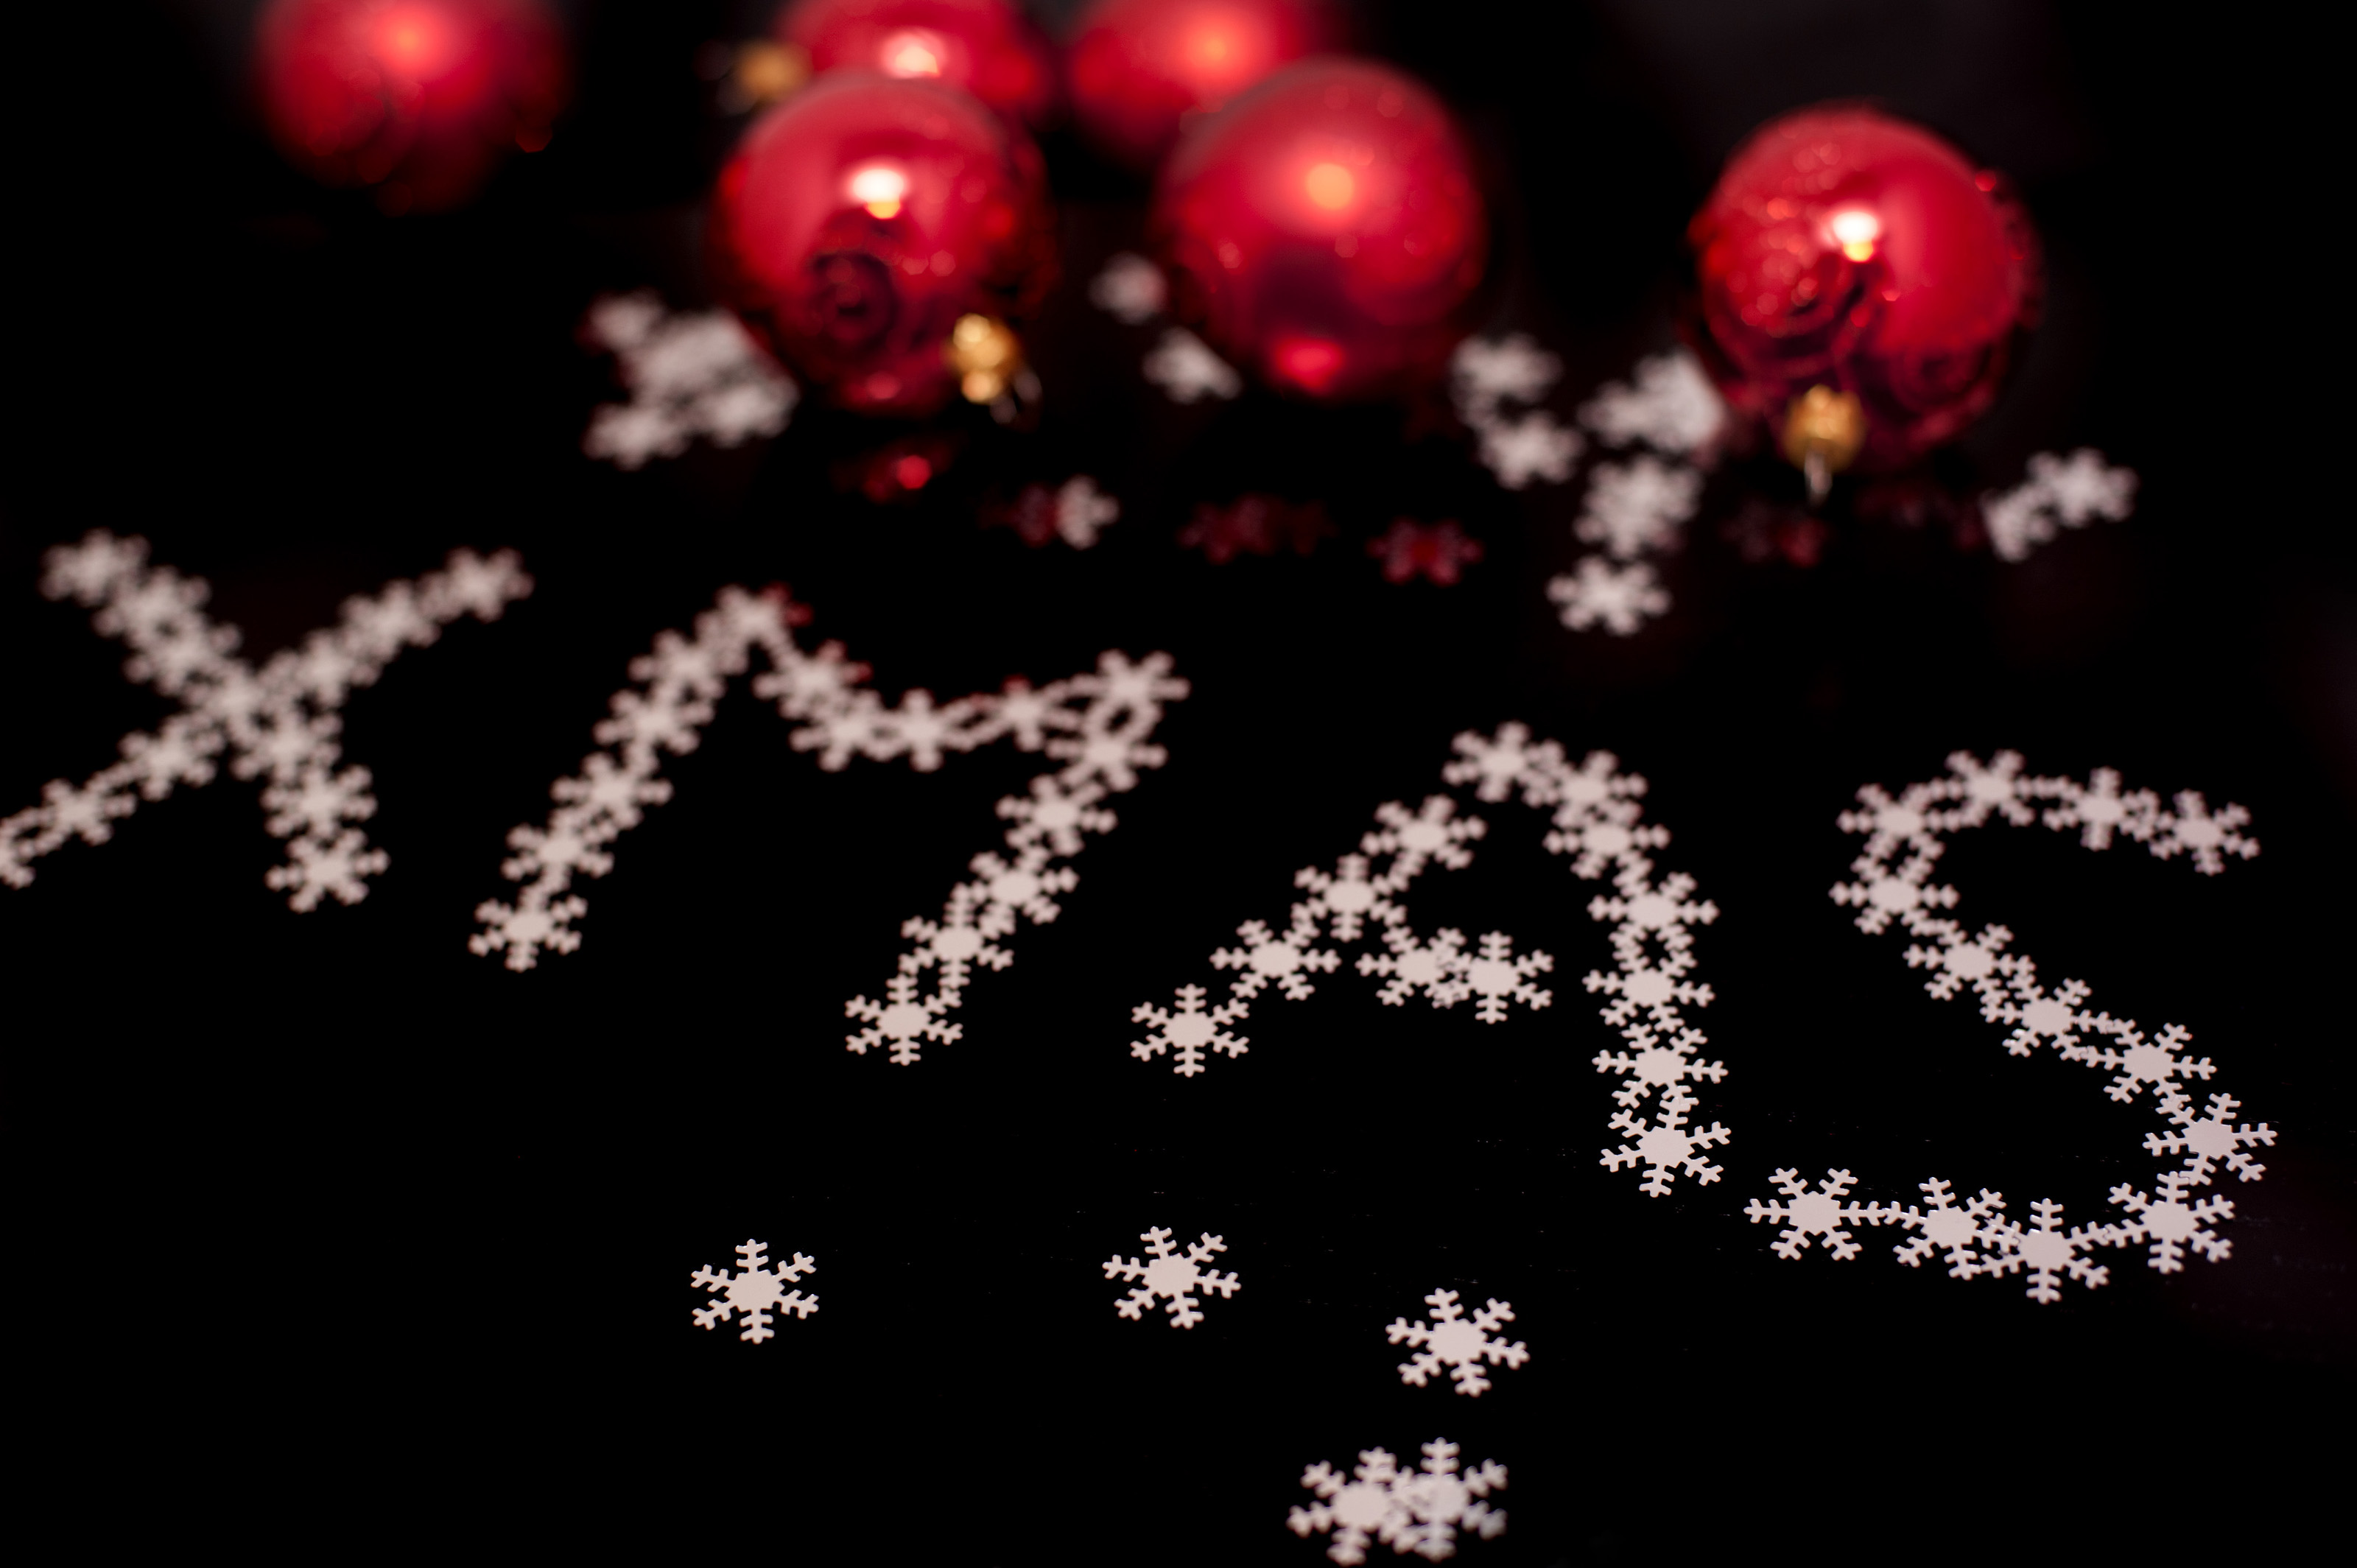 Free stock photo 6836 decorative xmas greeting freeimageslive decorative xmas greeting with tiny little white snaowflakes and red christmas baubles on a black background voltagebd Gallery